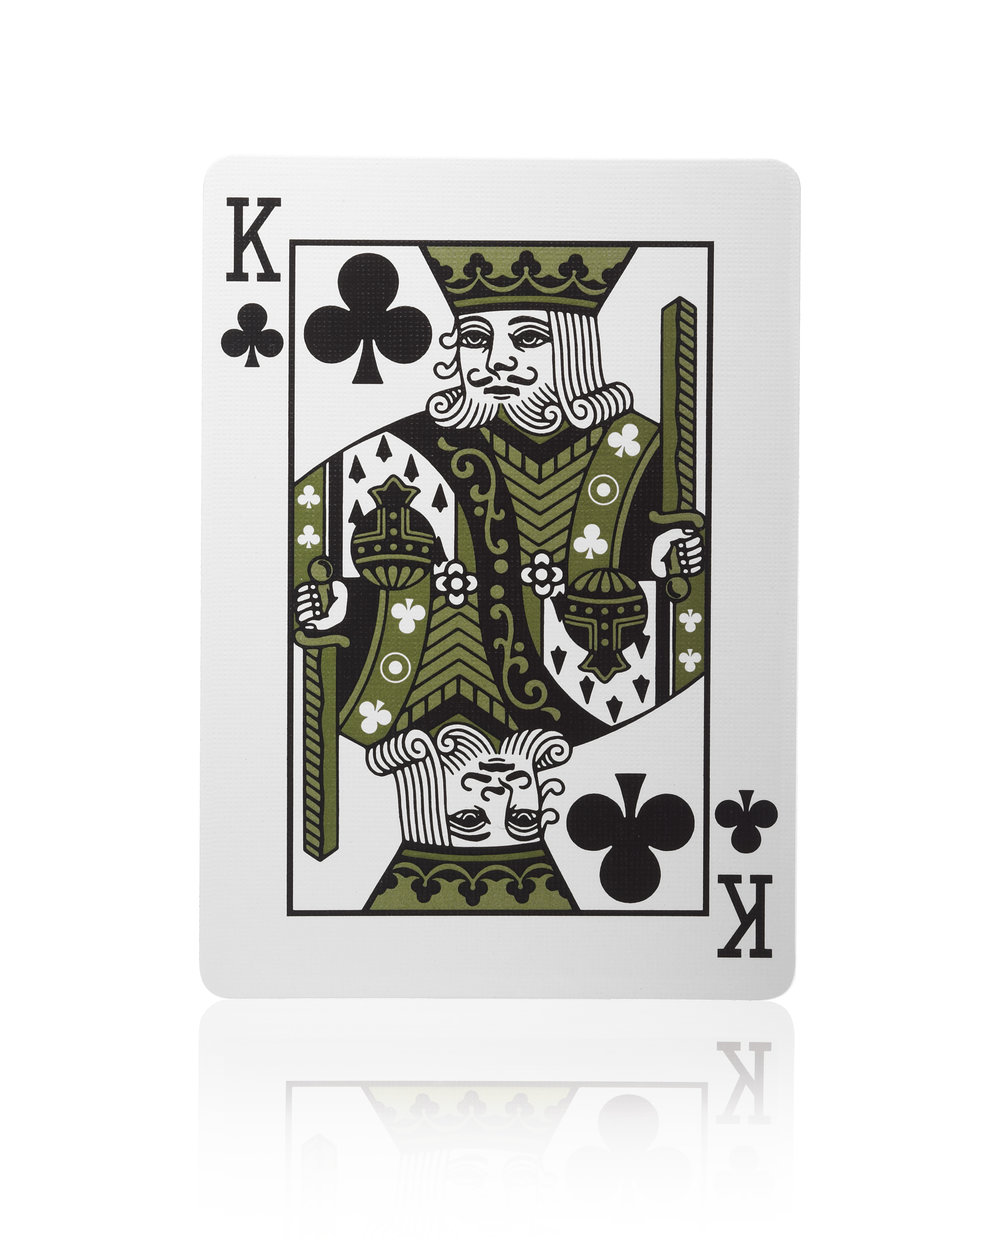 110330-PlayingCards-PlayingCards-011 copy.jpg